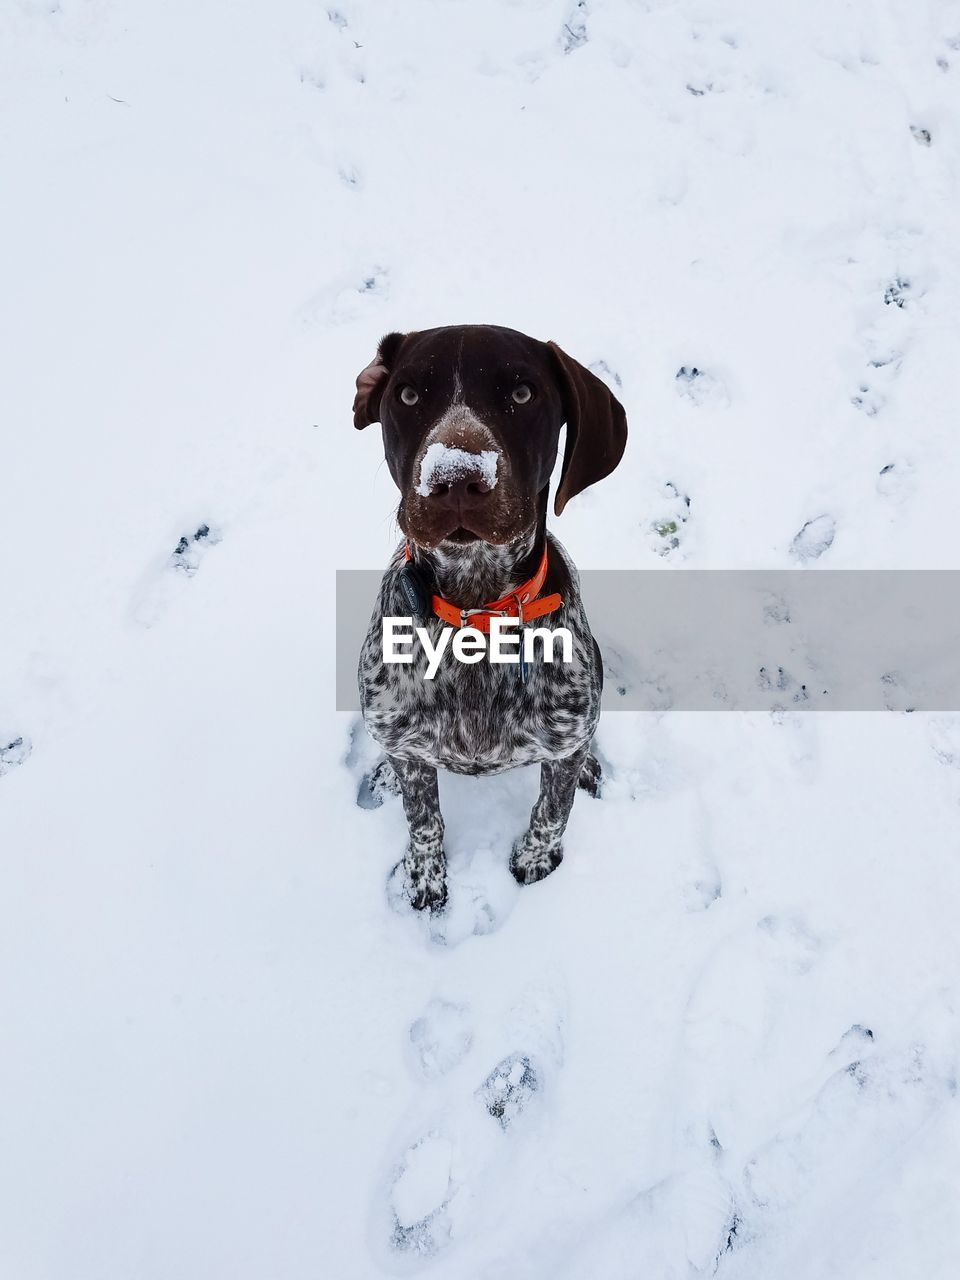 Dog in snow with snow on nose